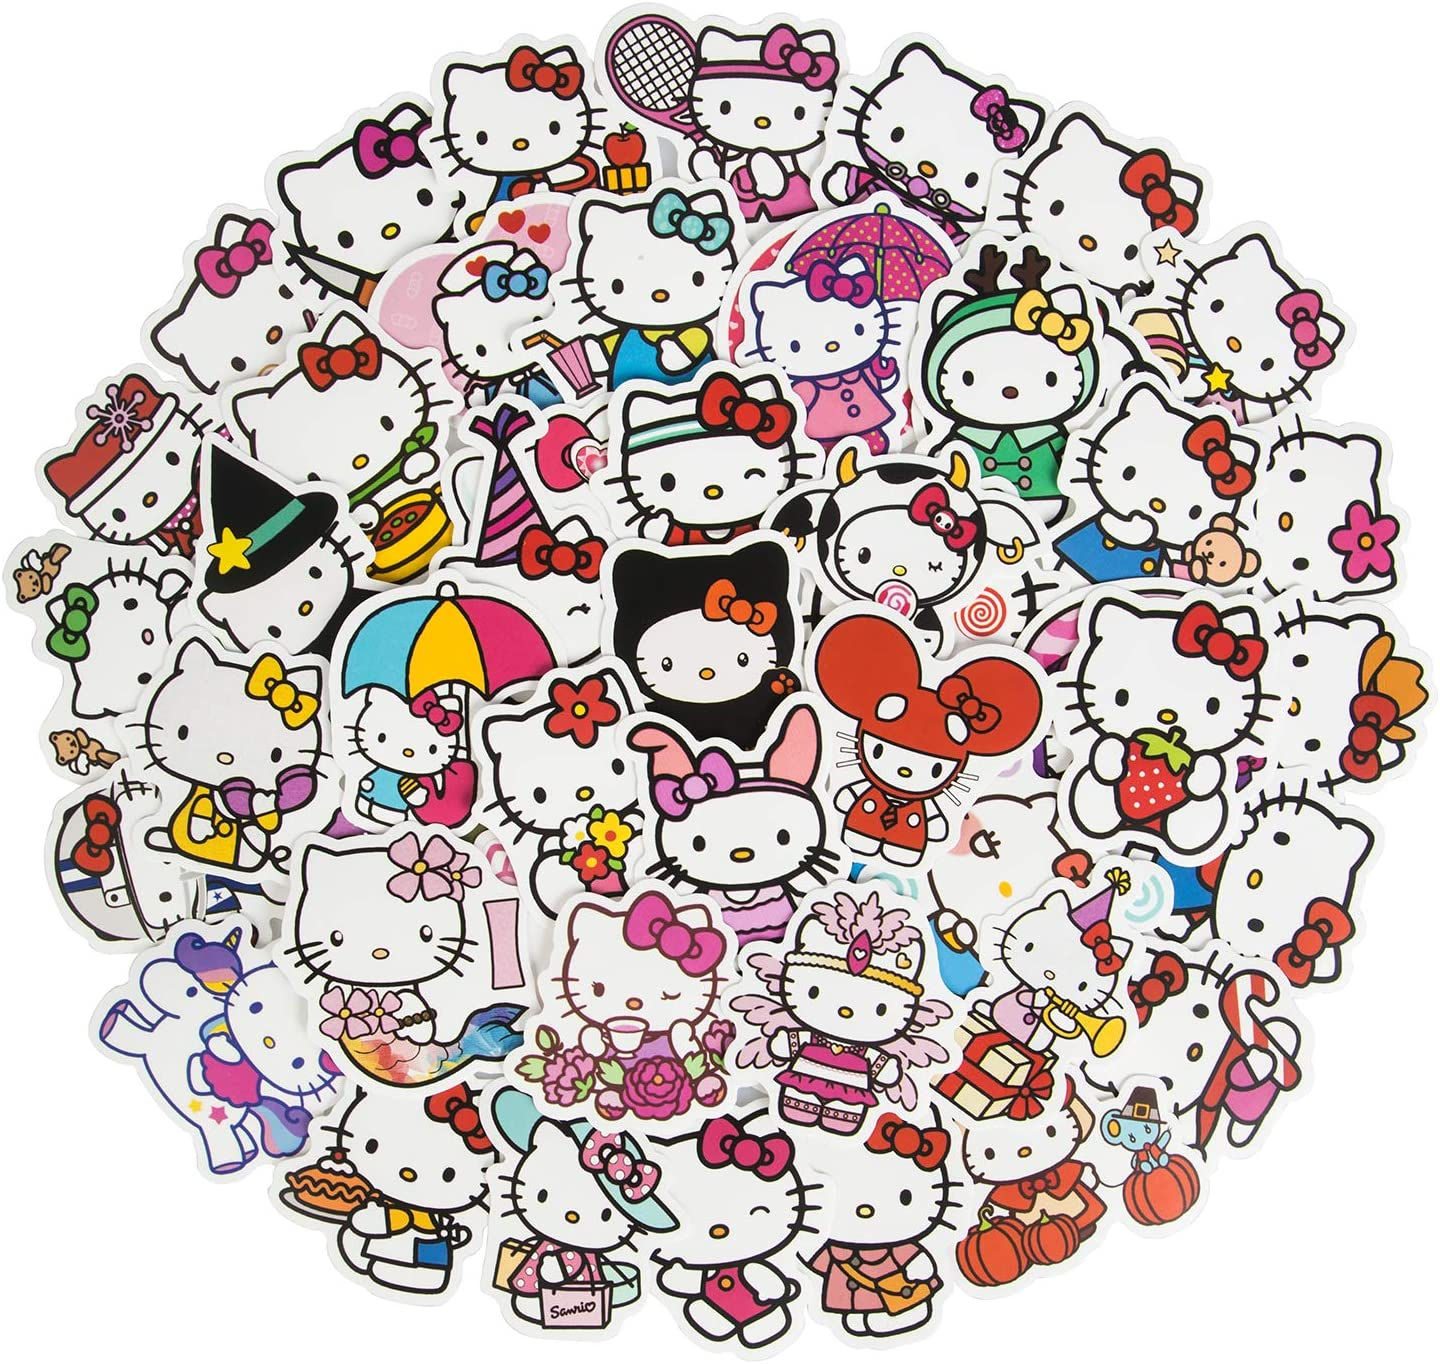 Cute Hello Kitty Stickers for Laptop, 50Pcs Lovely Waterproof Water Bottle Stickers for Skateboard Cup Guitar Luggage, Kawaii Vinyl Aesthetic Stickers for Kids Girls Teens